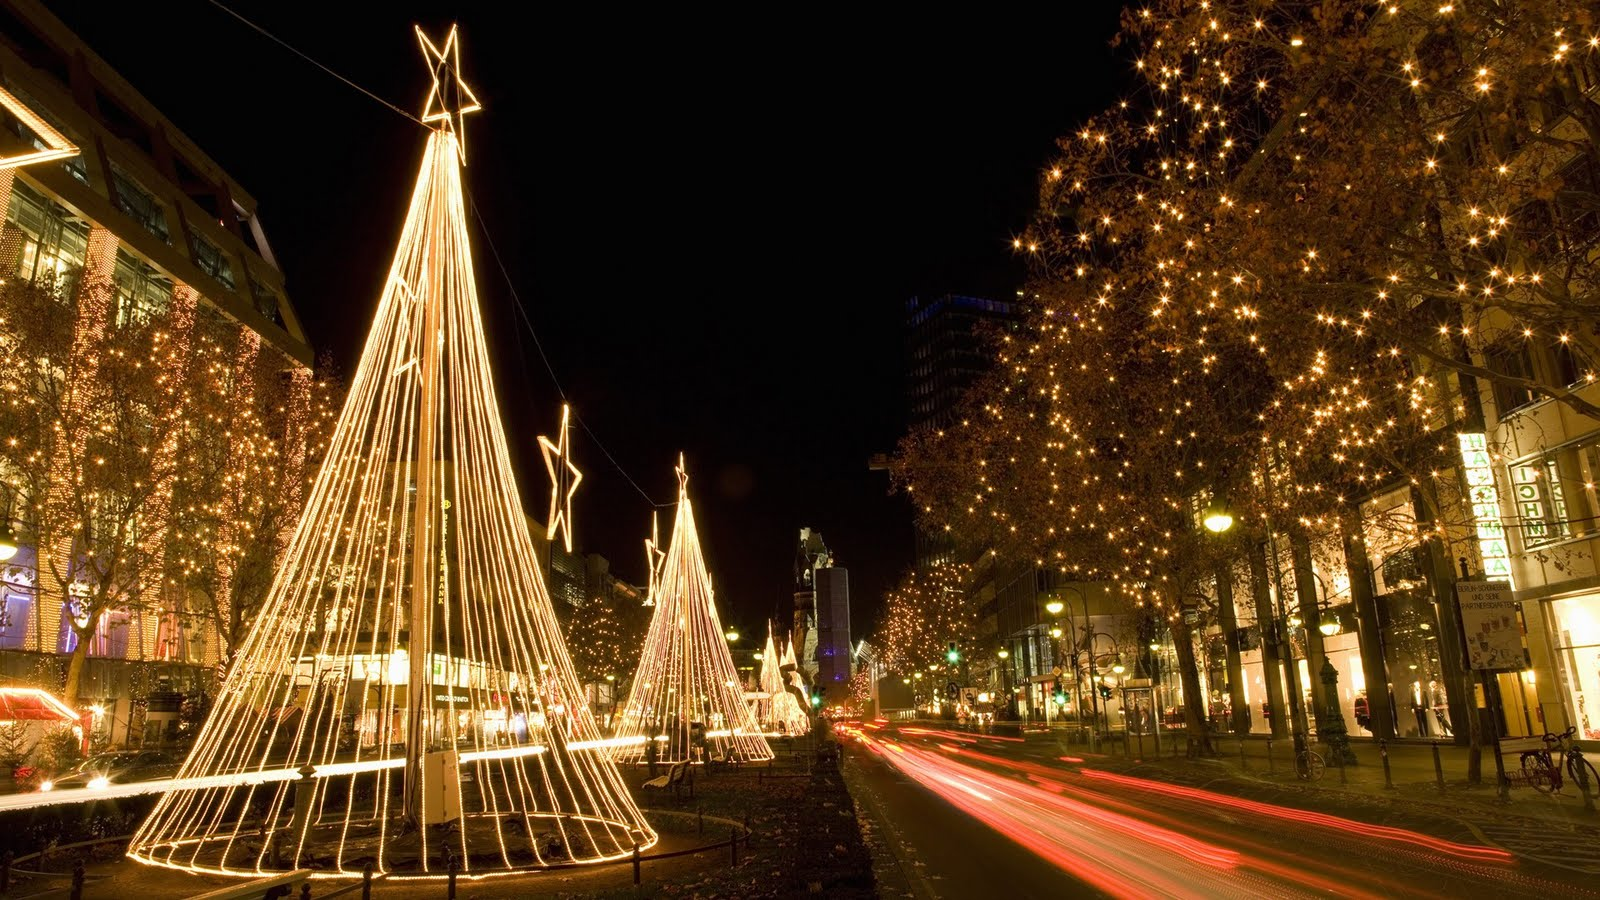 Christmas Live Wallpapers - Best Christmas Hd , HD Wallpaper & Backgrounds